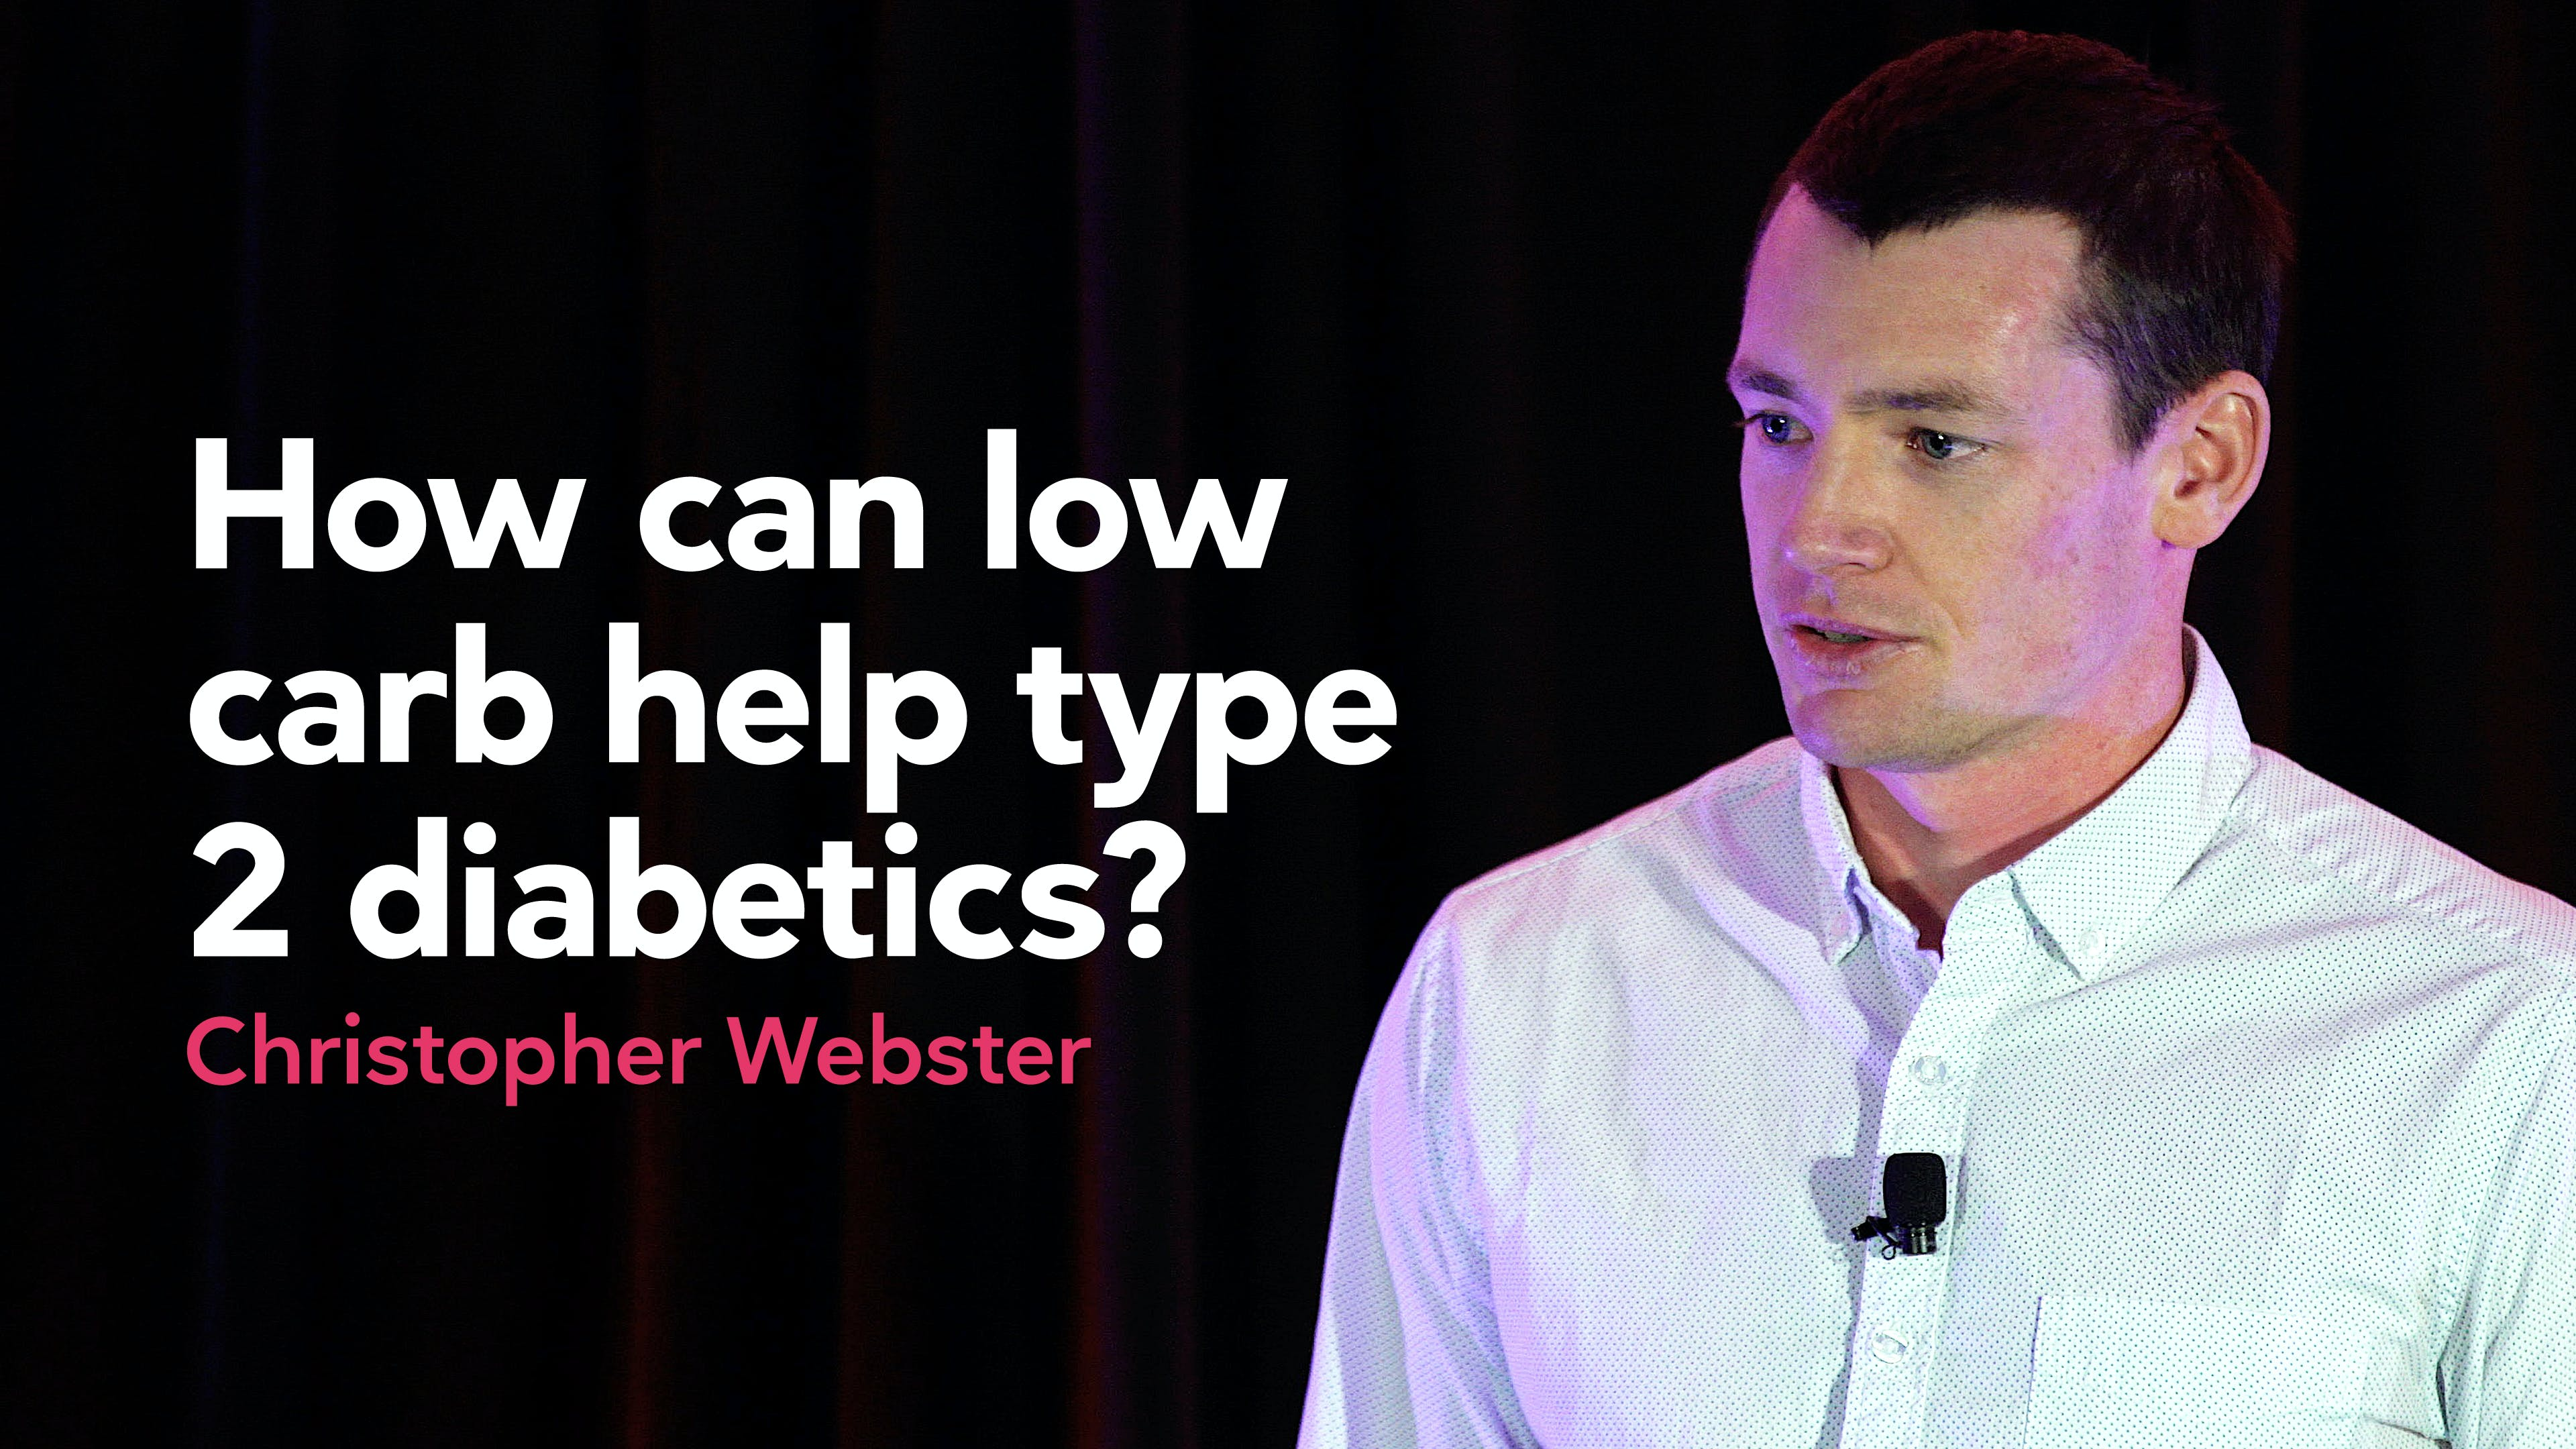 How can low carb help people with type 2 diabetes?